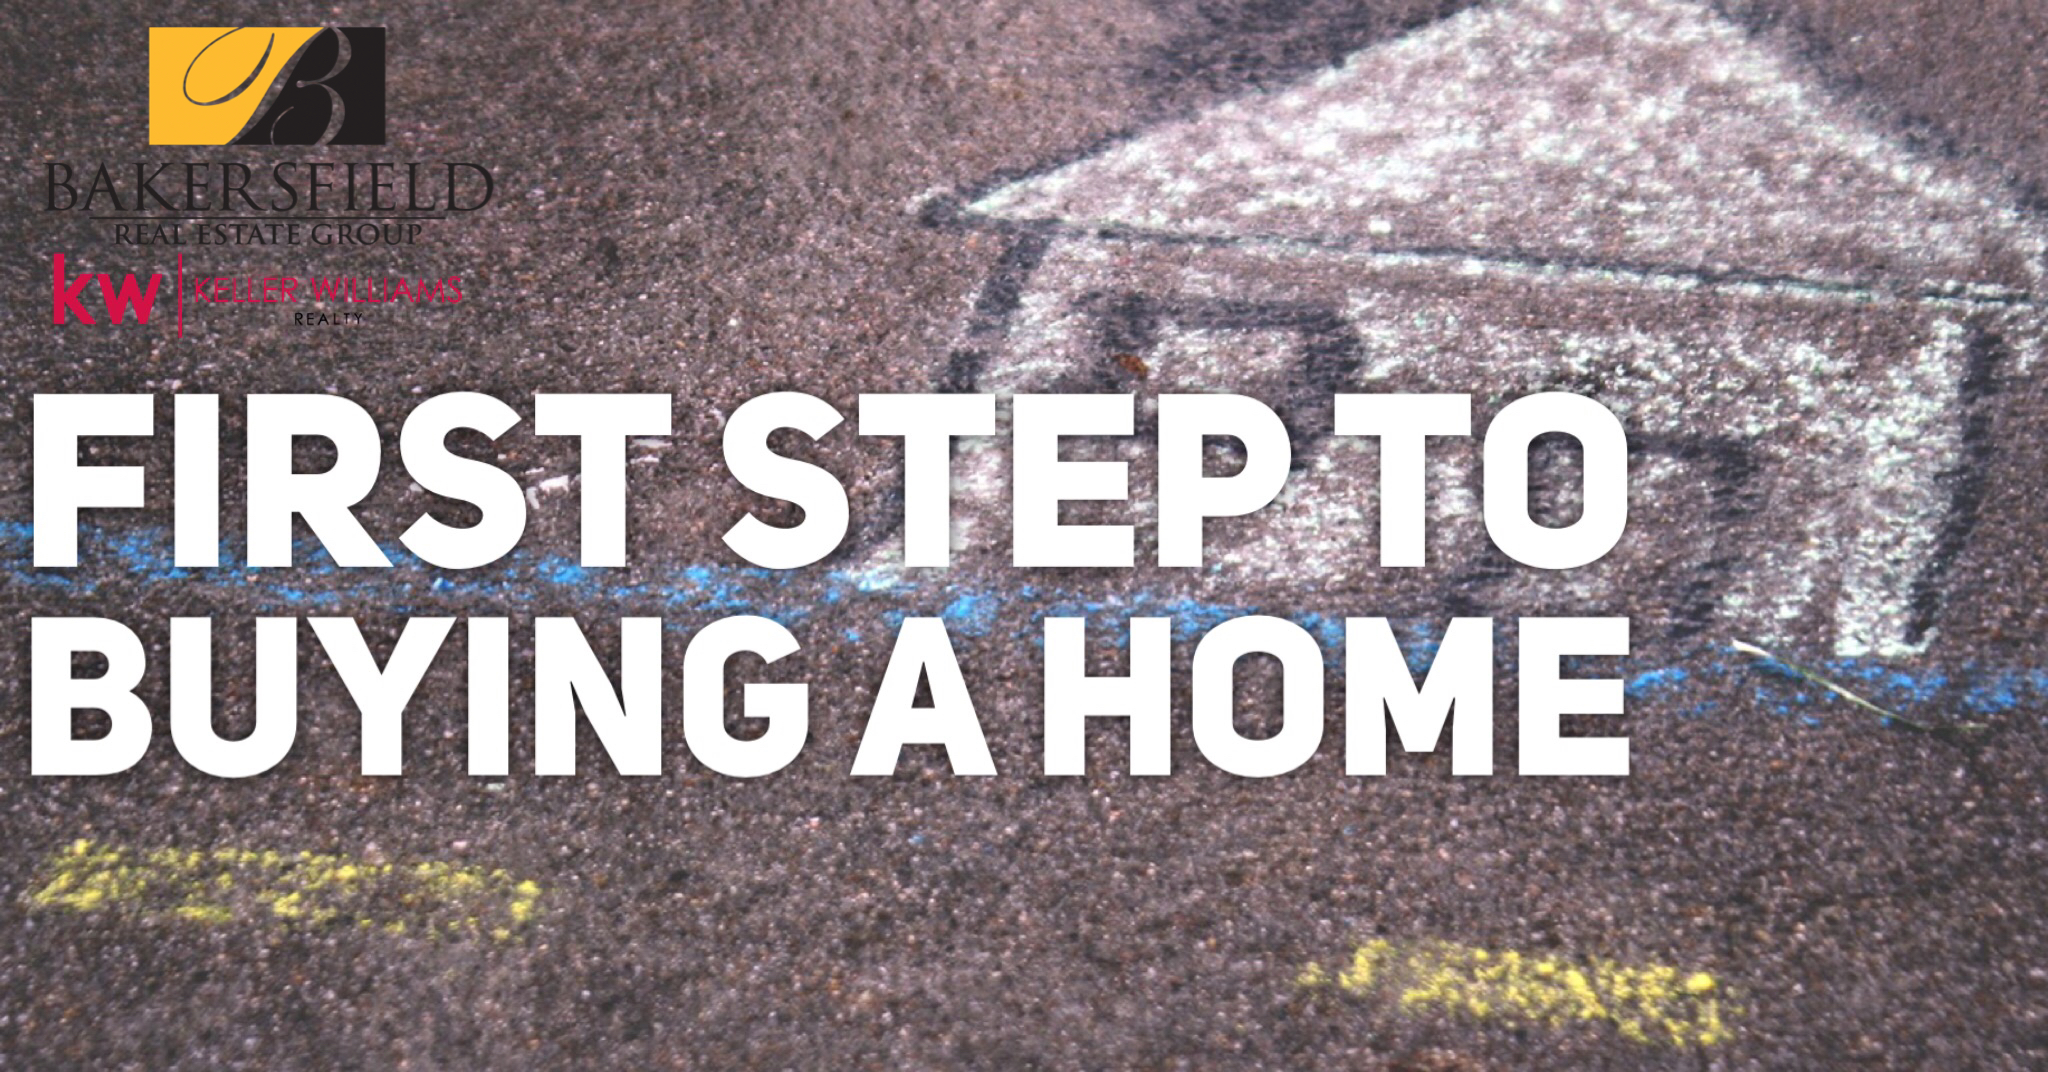 First Step to Buying a Home - Bakersfield Realtor - 661-704-4244